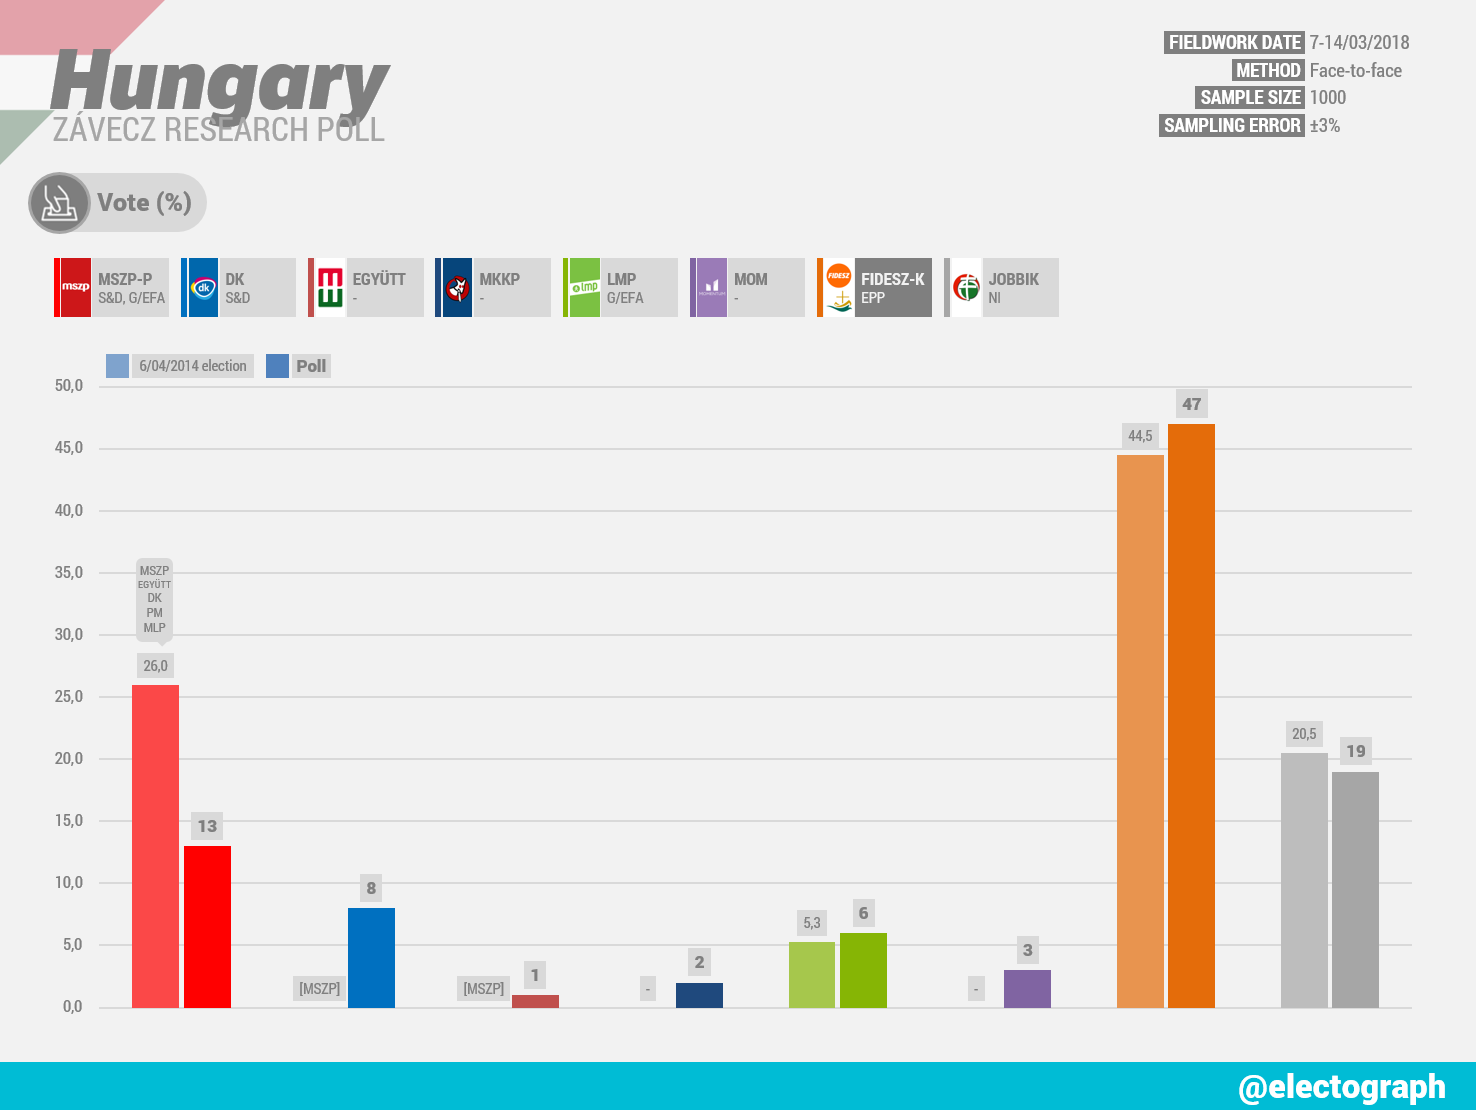 HUNGARY Závecz Research poll chart, March 2018